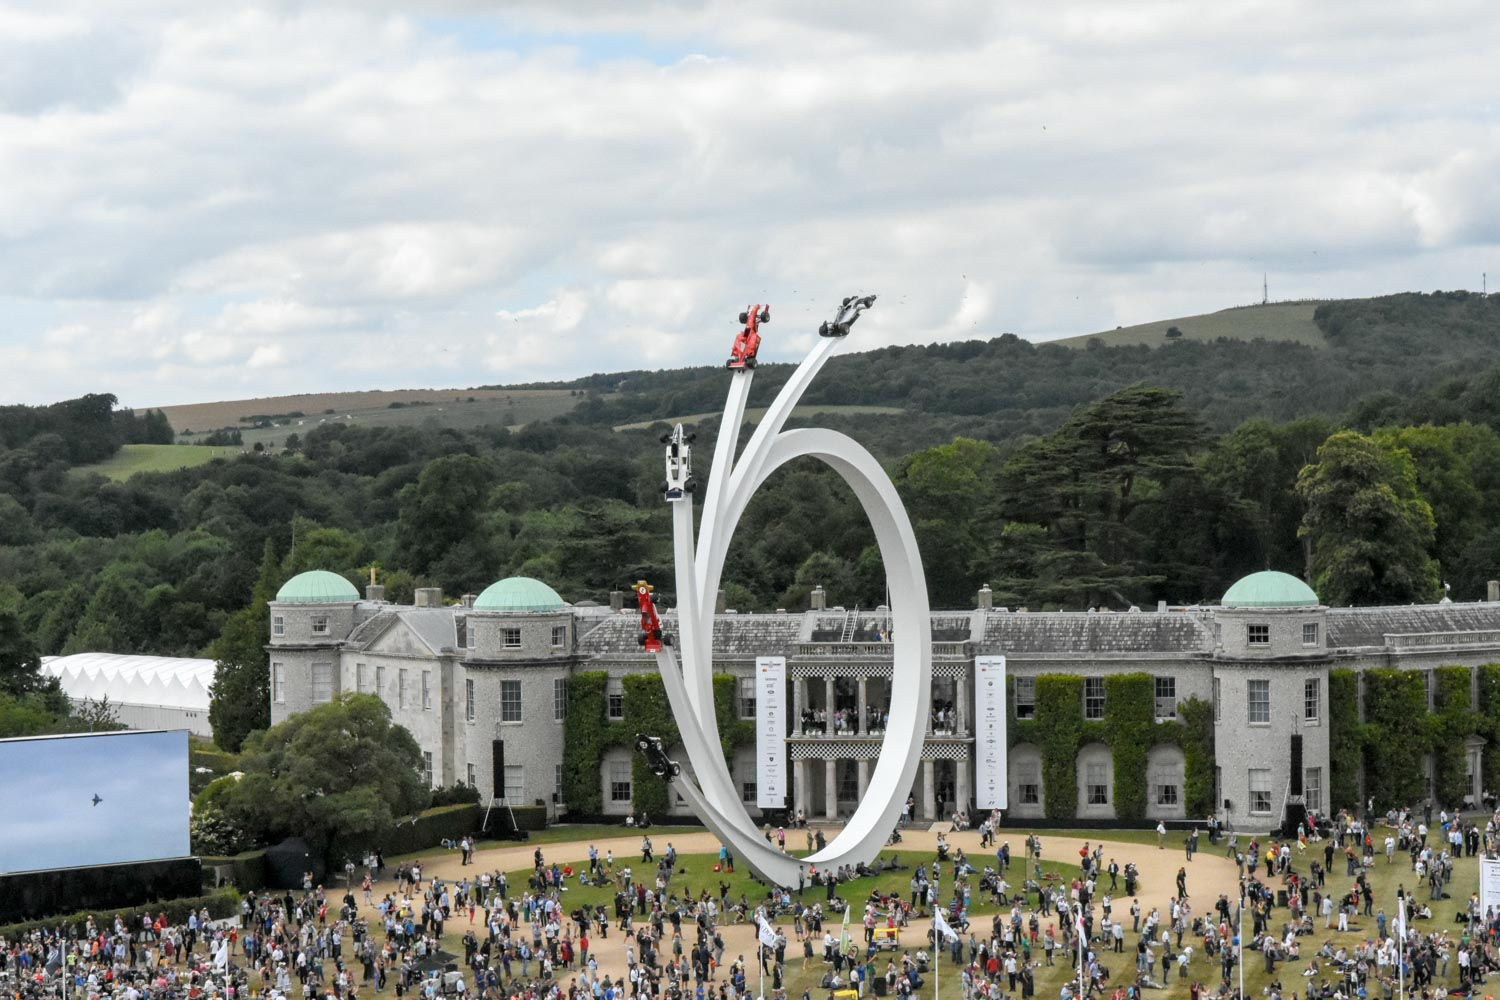 Goodwood FoS 2017